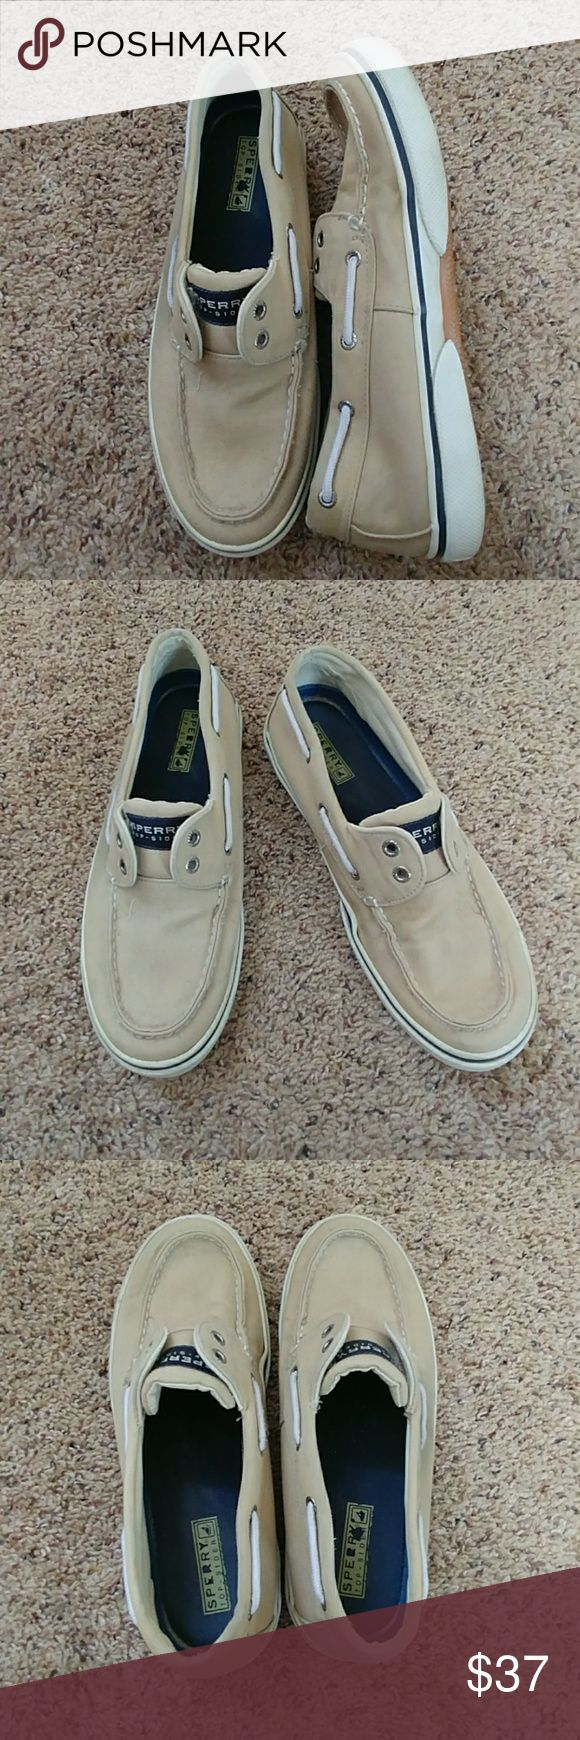 SALE Mens Sperry Topsiders GUC khaki colored canvas with navy and white accents Topsiders size 9... Goes perfectly with a casual sweater or tee. Sperry Shoes Loafers & Slip-Ons